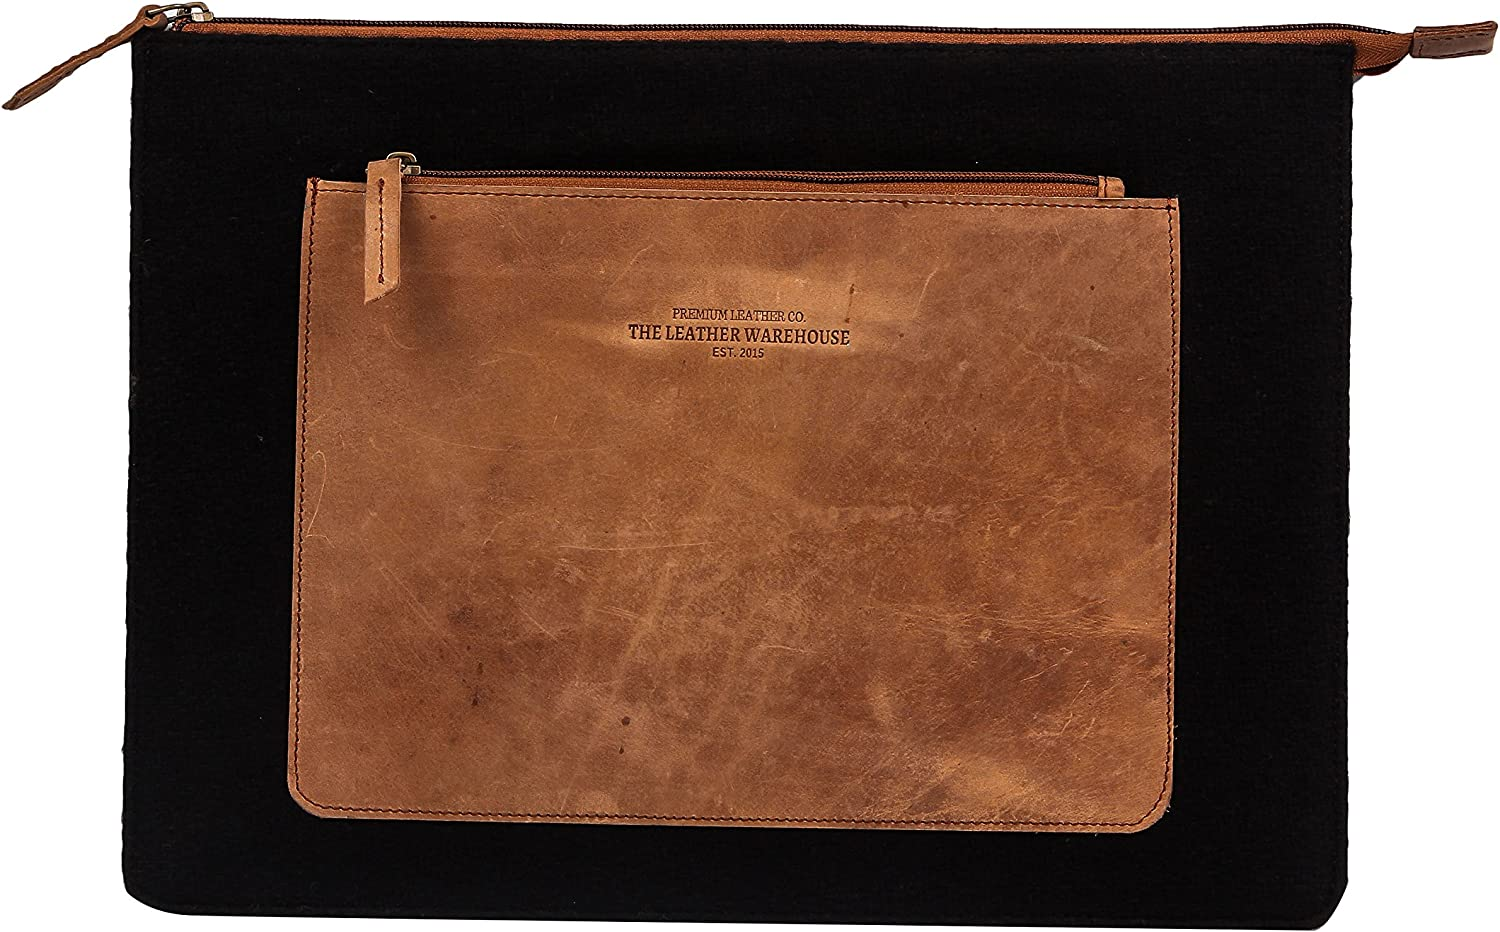 The Leather Warehouse 13 Inch Genuine Leather Laptop Sleeve with Front Pocket / Compartment Handmade Men / Women - Black and Tan